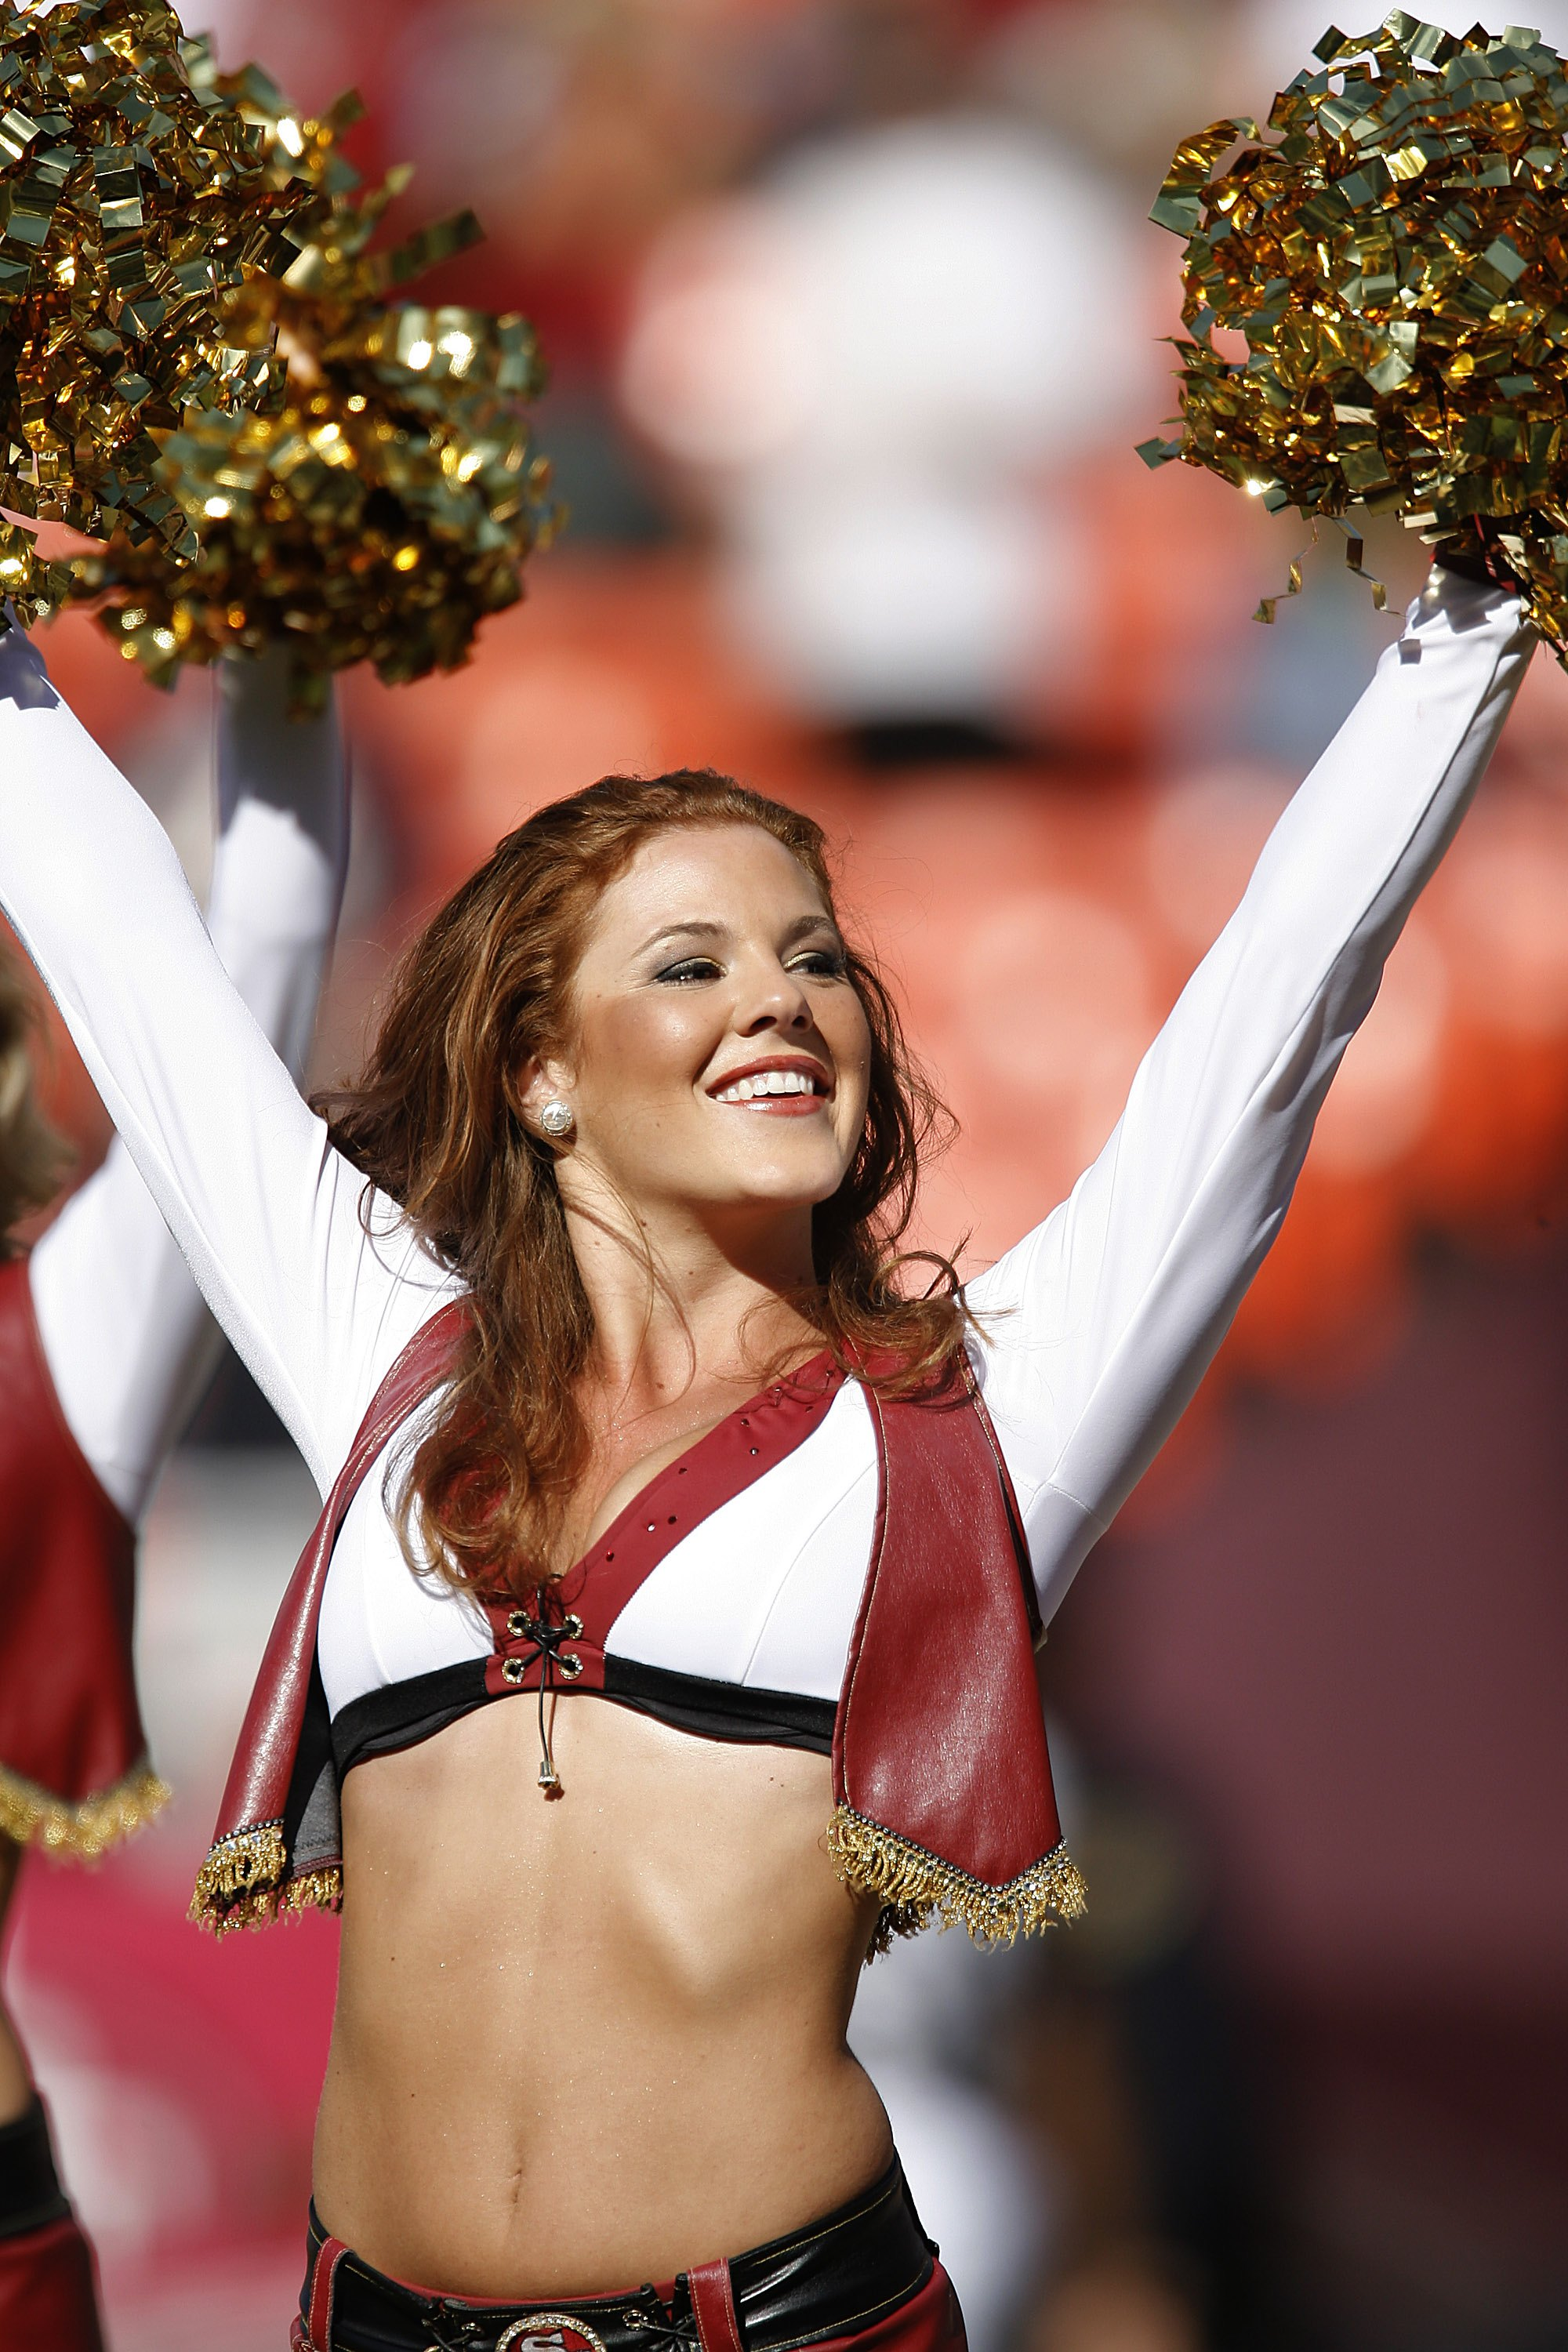 Huh? San Francisco<br /> s football team the 49ers have the Gold Rush cheerleaders!